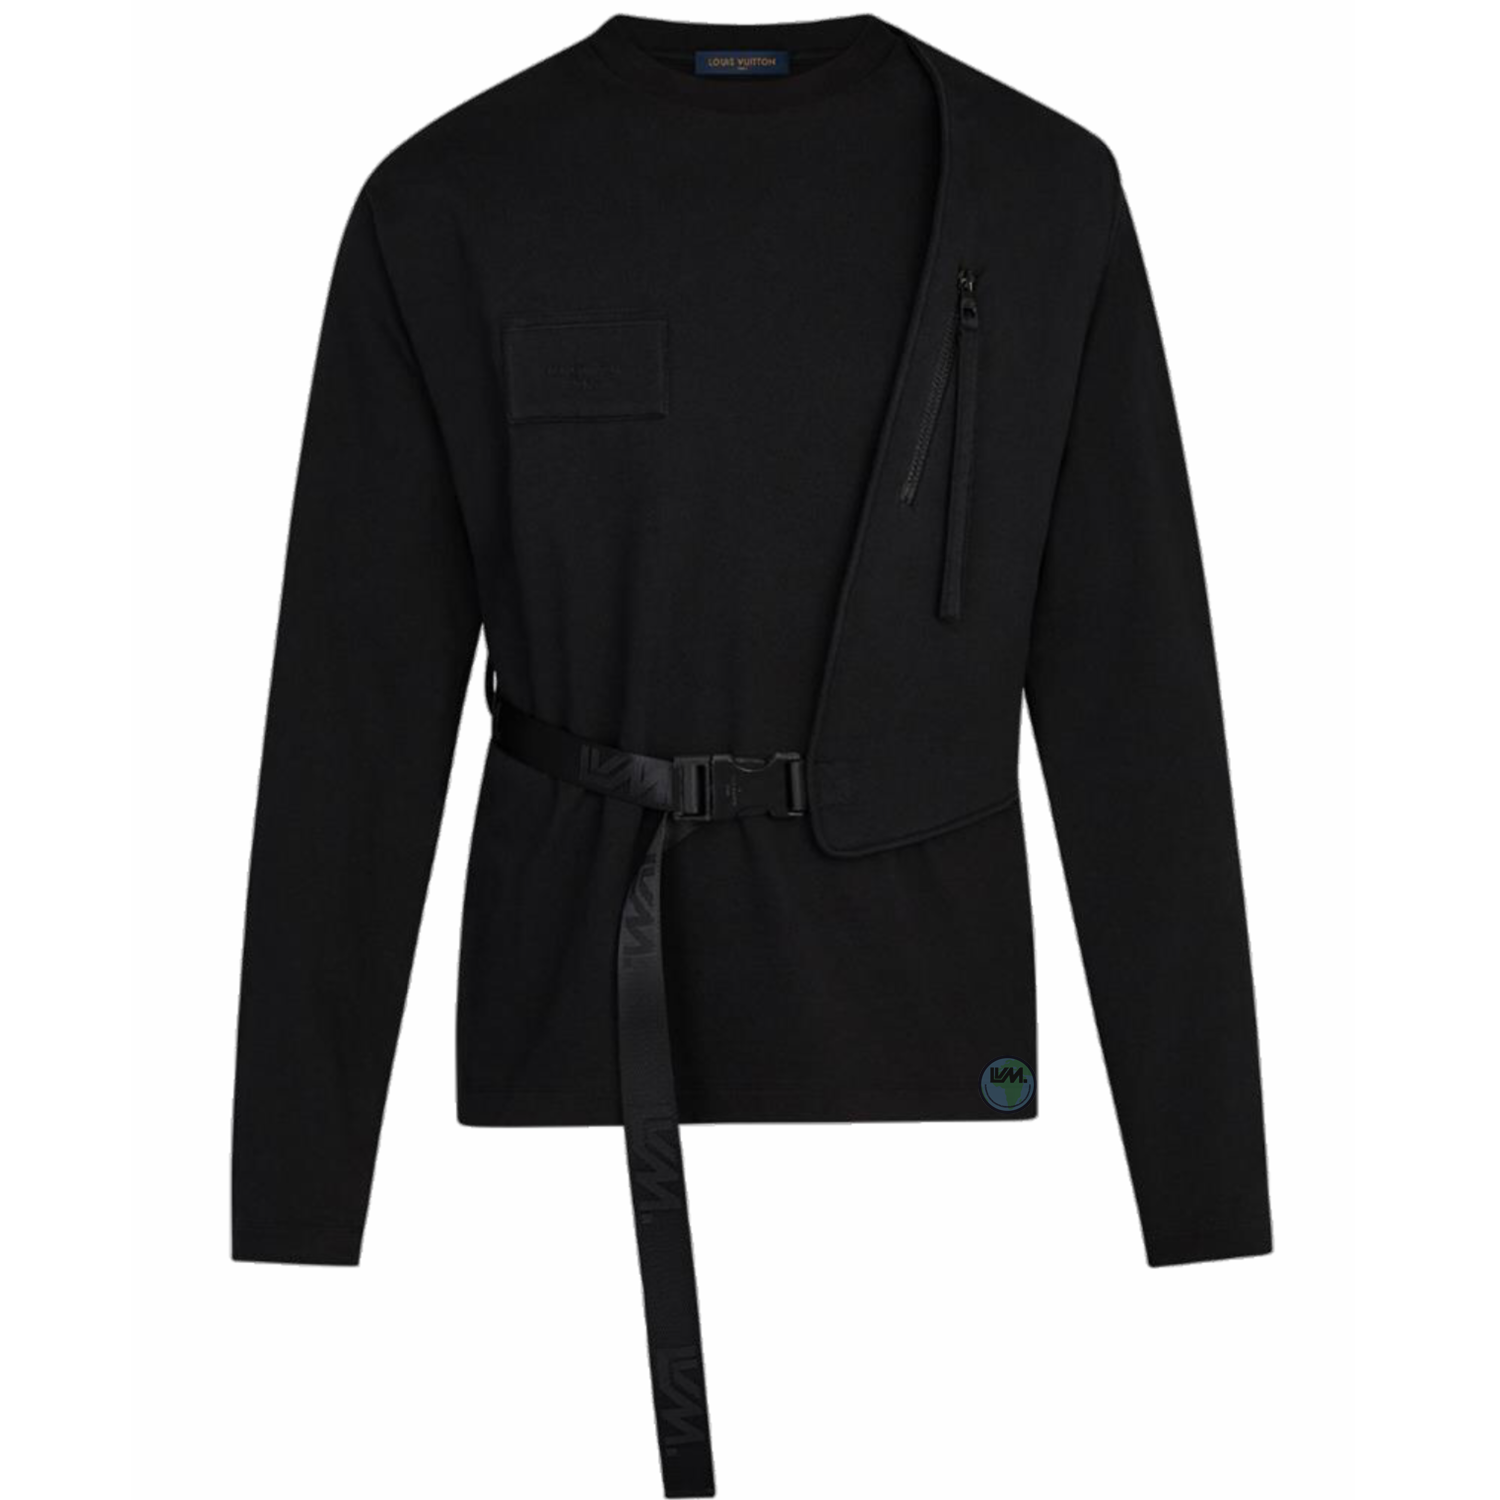 gilet long sleeve tee - €790 $10501a5cnynoir